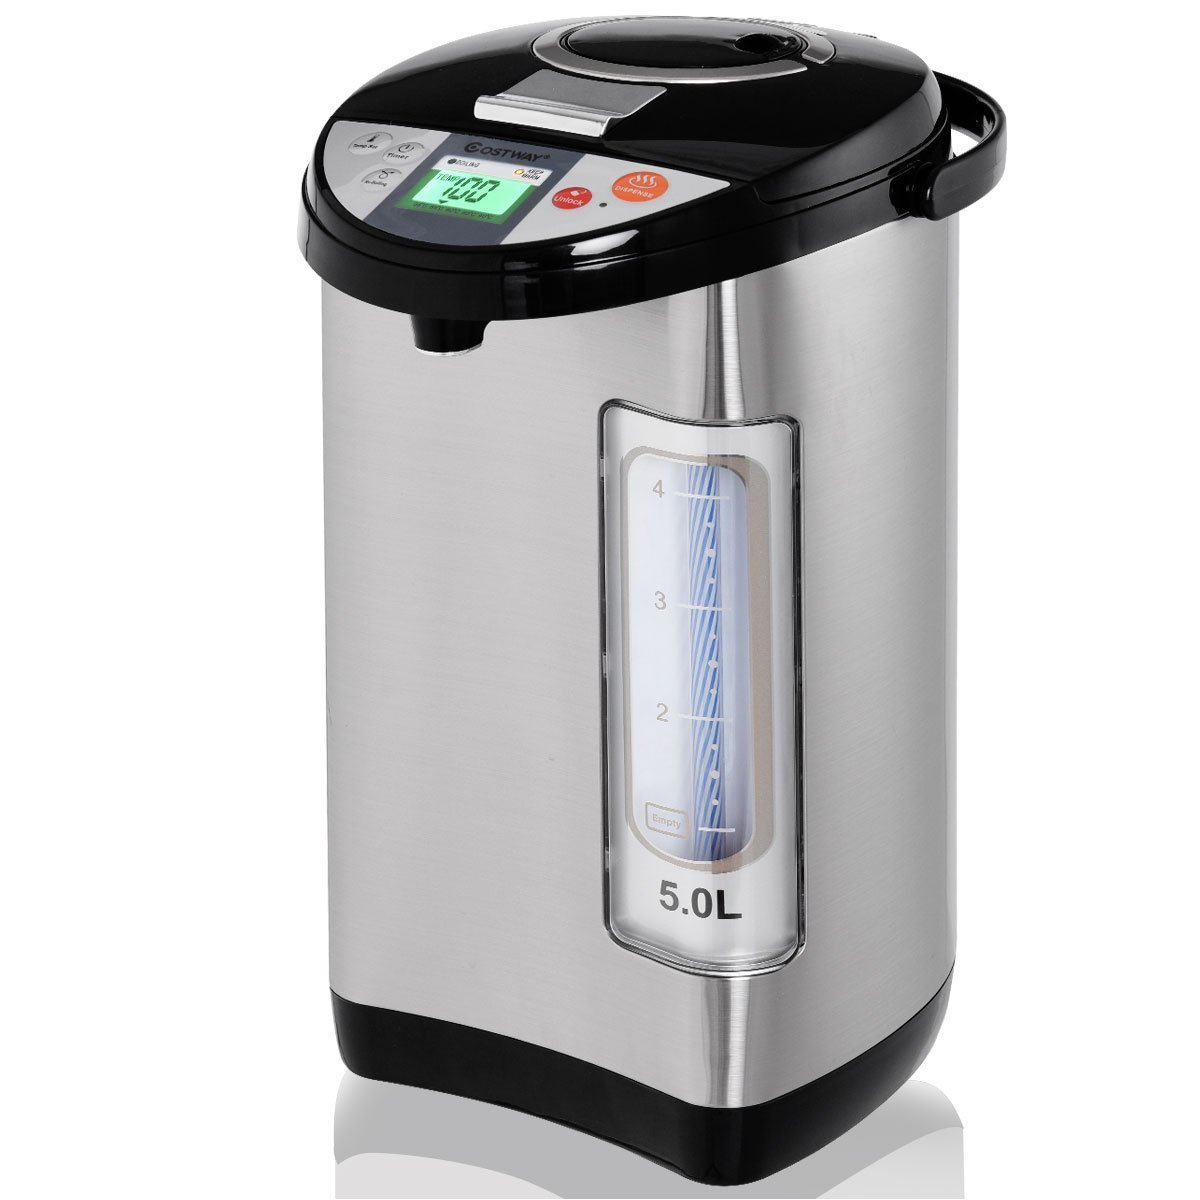 Costway Instant Electric Hot Water Pot, Safety Lock to Prevent Spillage, 5-Liter LCD Water Boiler and Warmer, stainless steel Electric Kettle Hot Water Dispenser